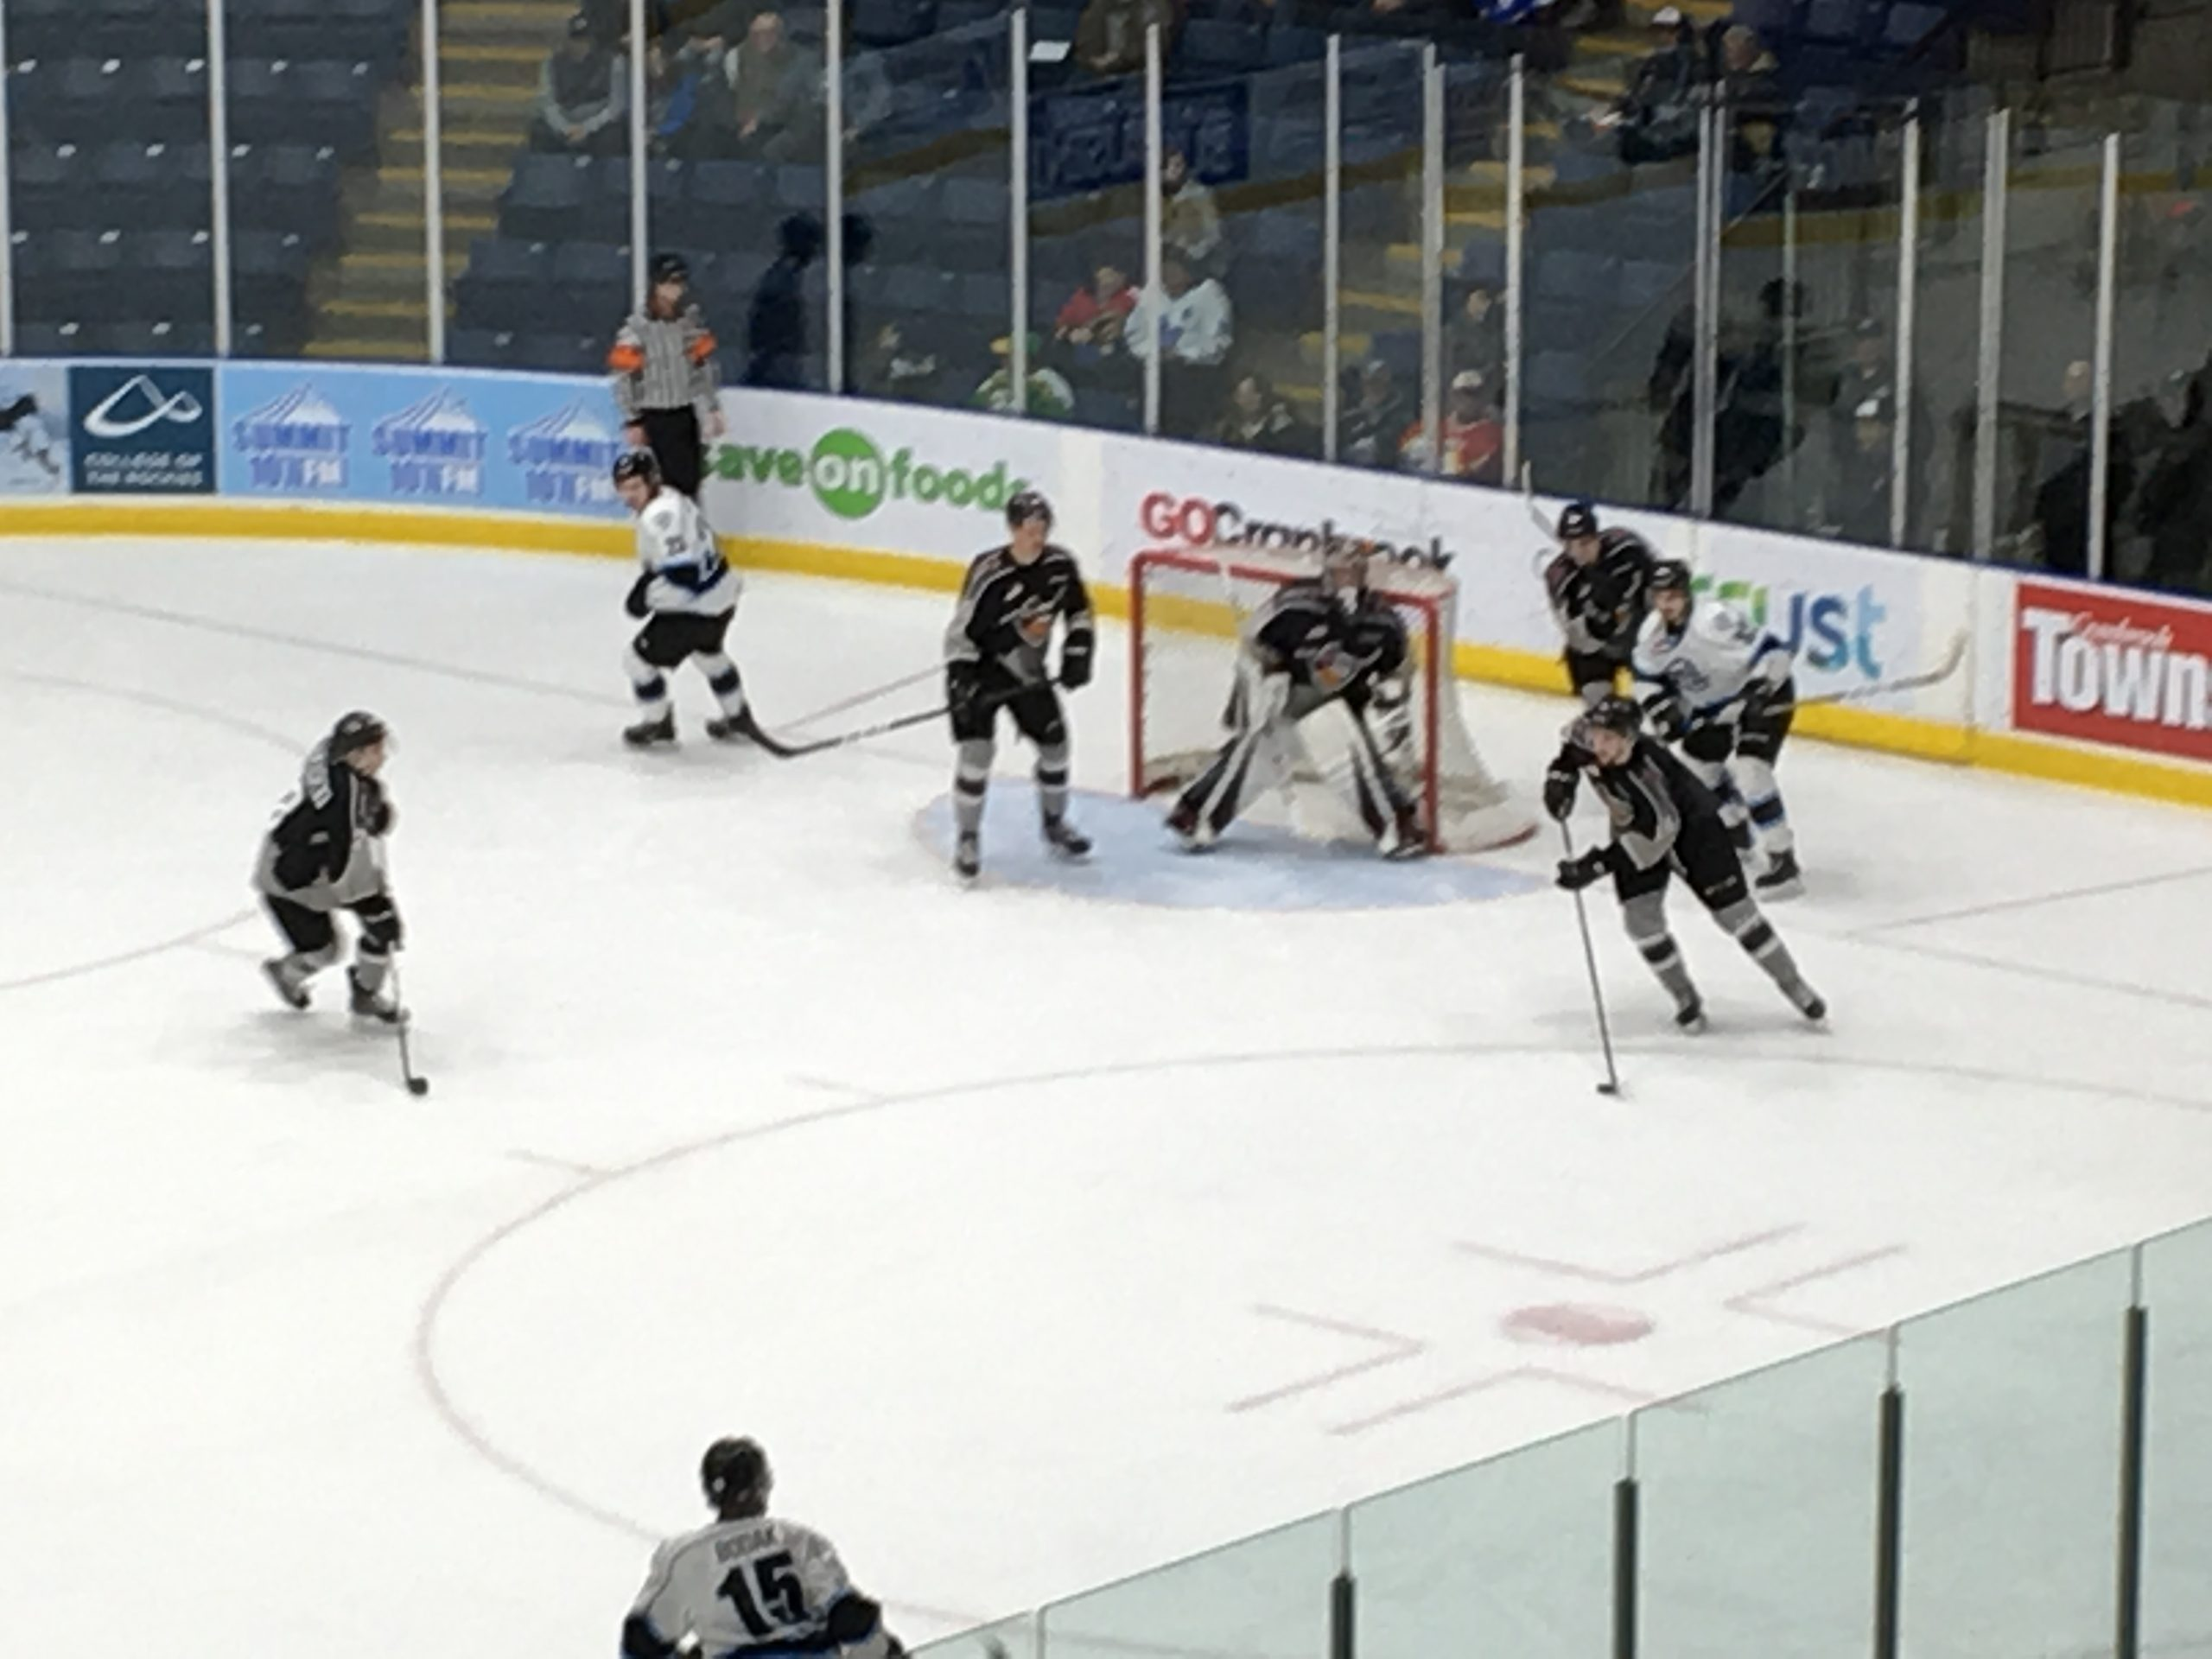 Vancouver's defense shines in 6-0 victory over ICE